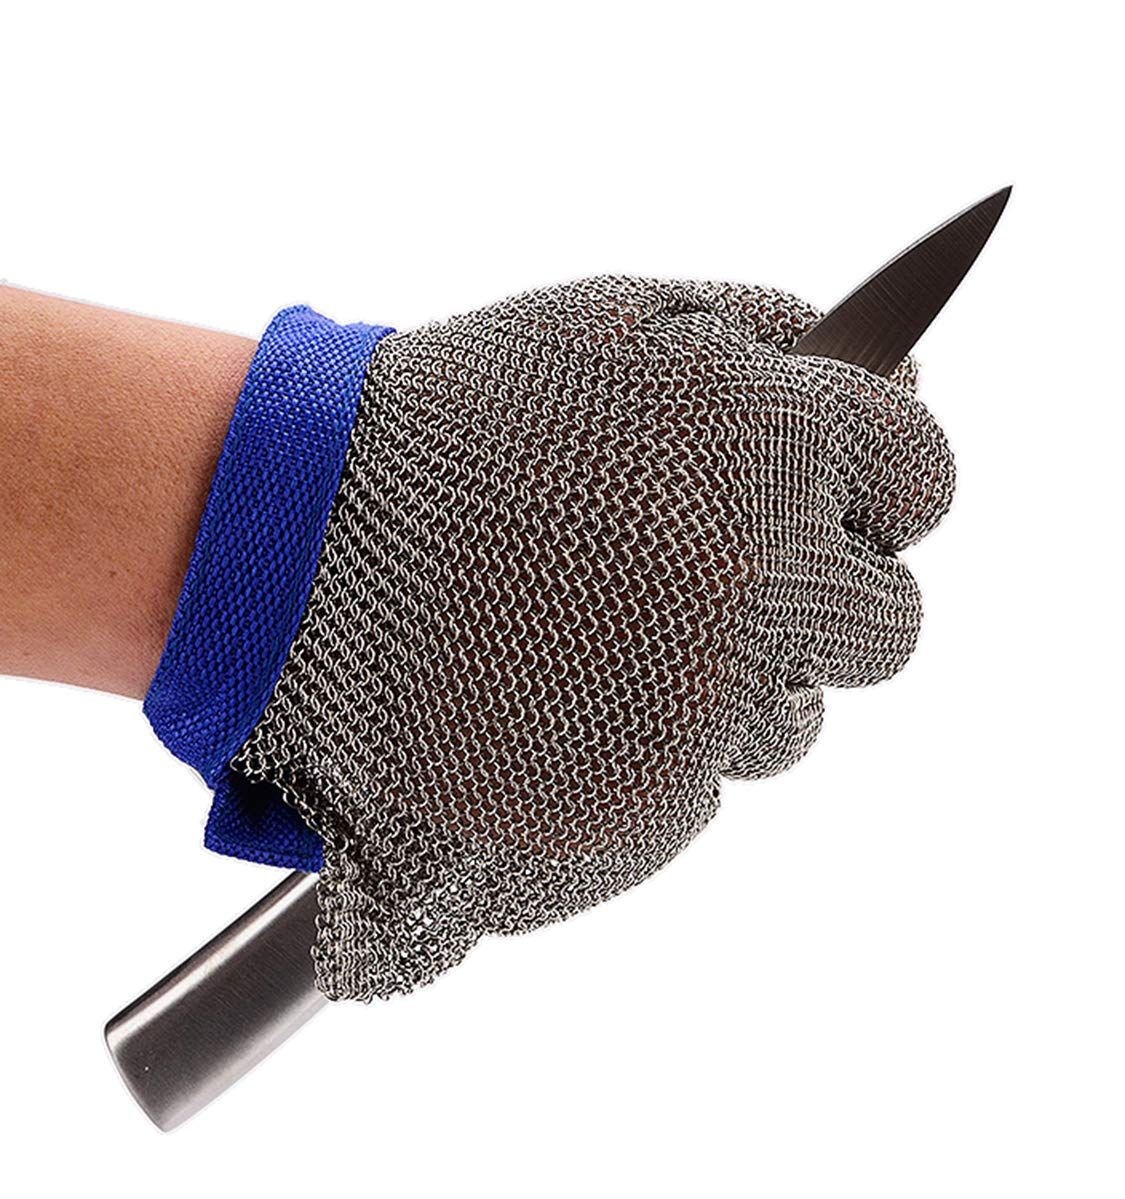 Stainless Steel Chain Mail Cut Proof Stab Resistant Butcher Glove Safety Work Glove, Size Large by CPTDCL (Image #1)